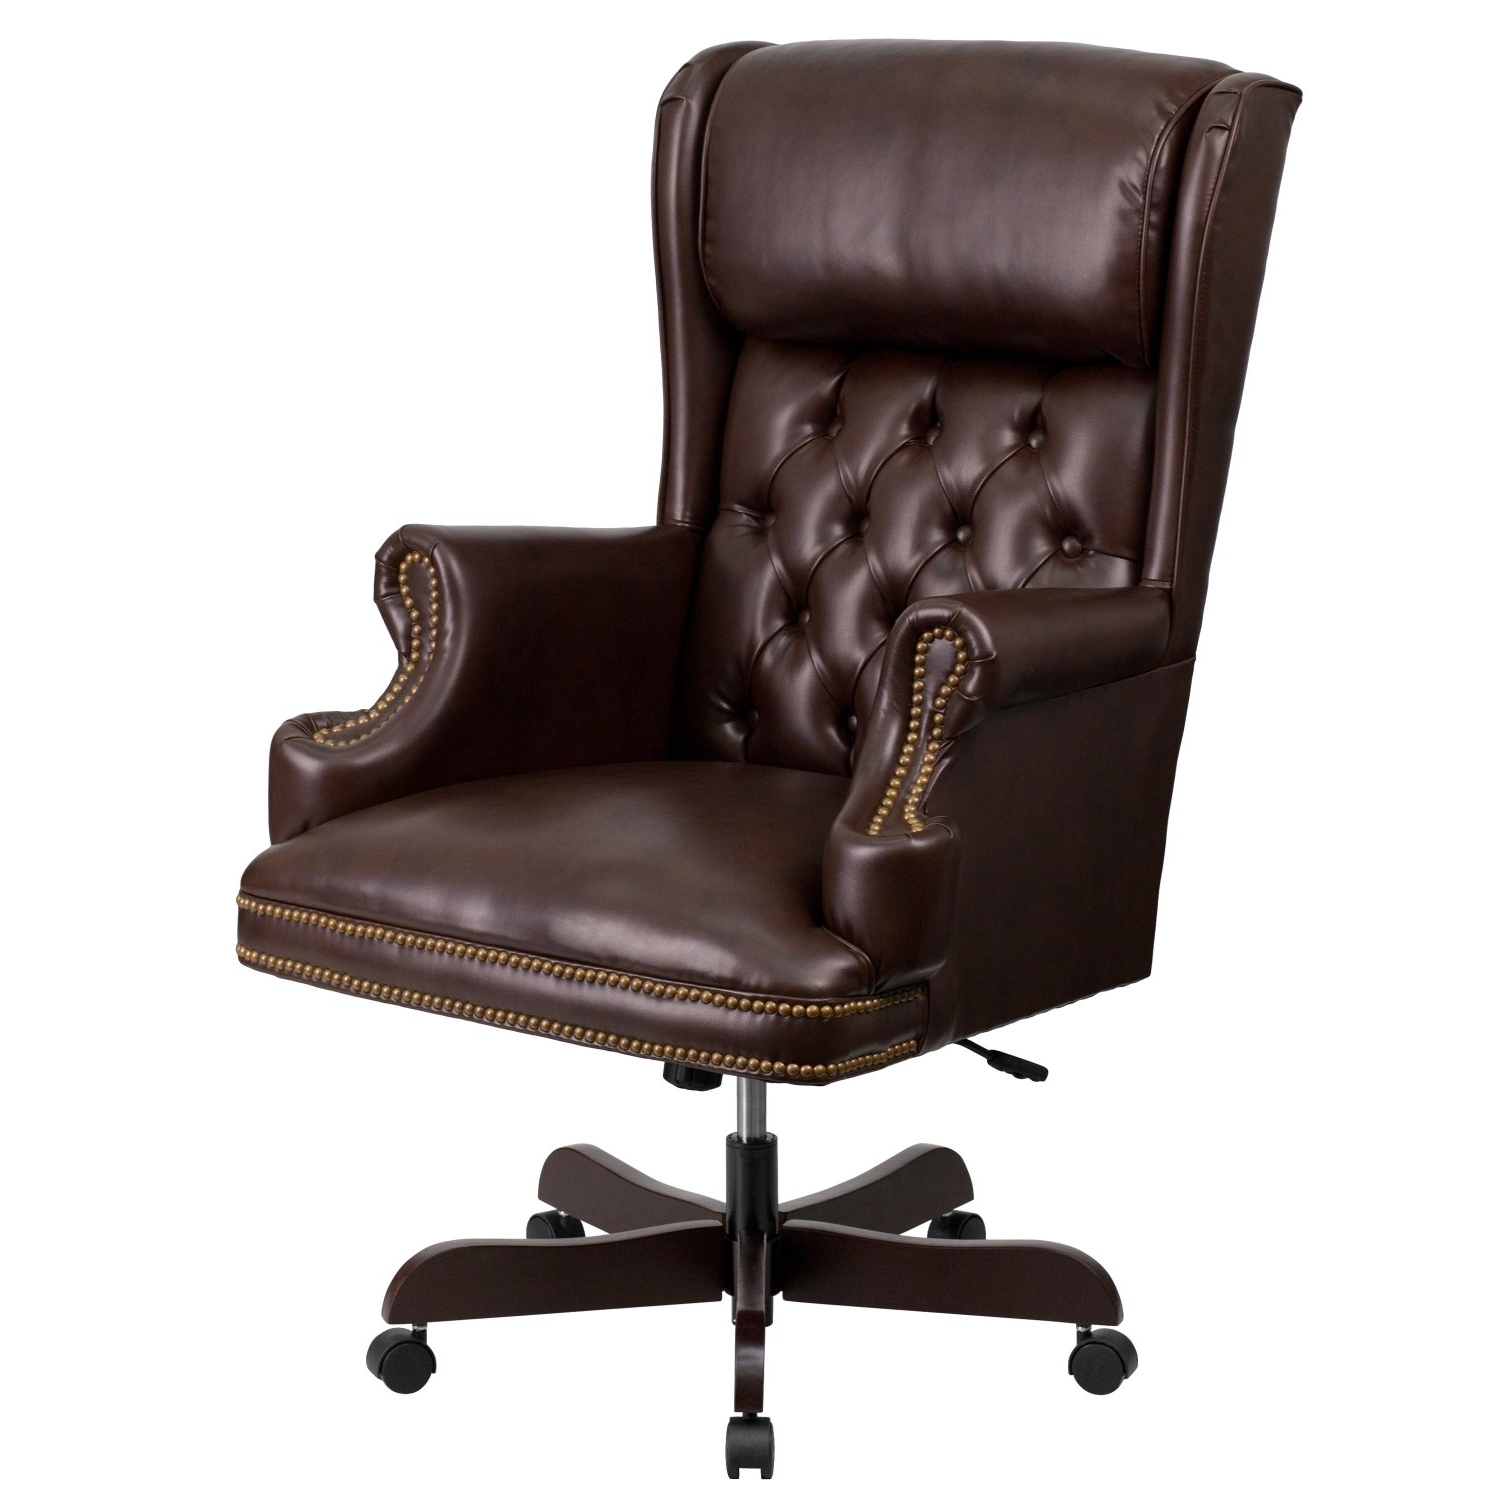 Furniture Ci J600 Brn Gg High Back Traditional Tufted Brown With Regard To Fashionable Oversized Executive Office Chairs (View 8 of 20)